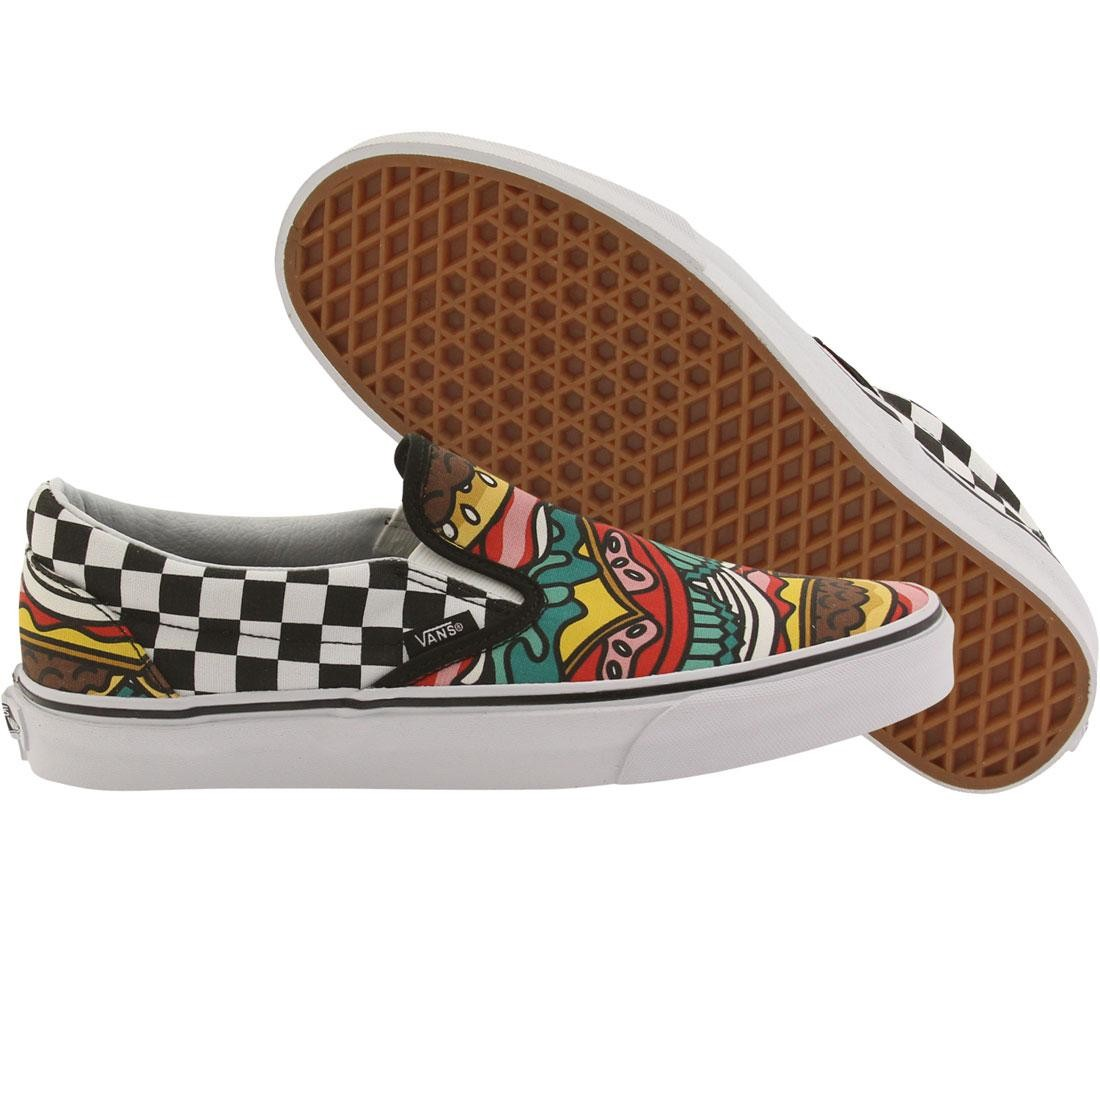 151907dfad5 Vans Men Classic Slip-On - Late Night Burgers black burger check